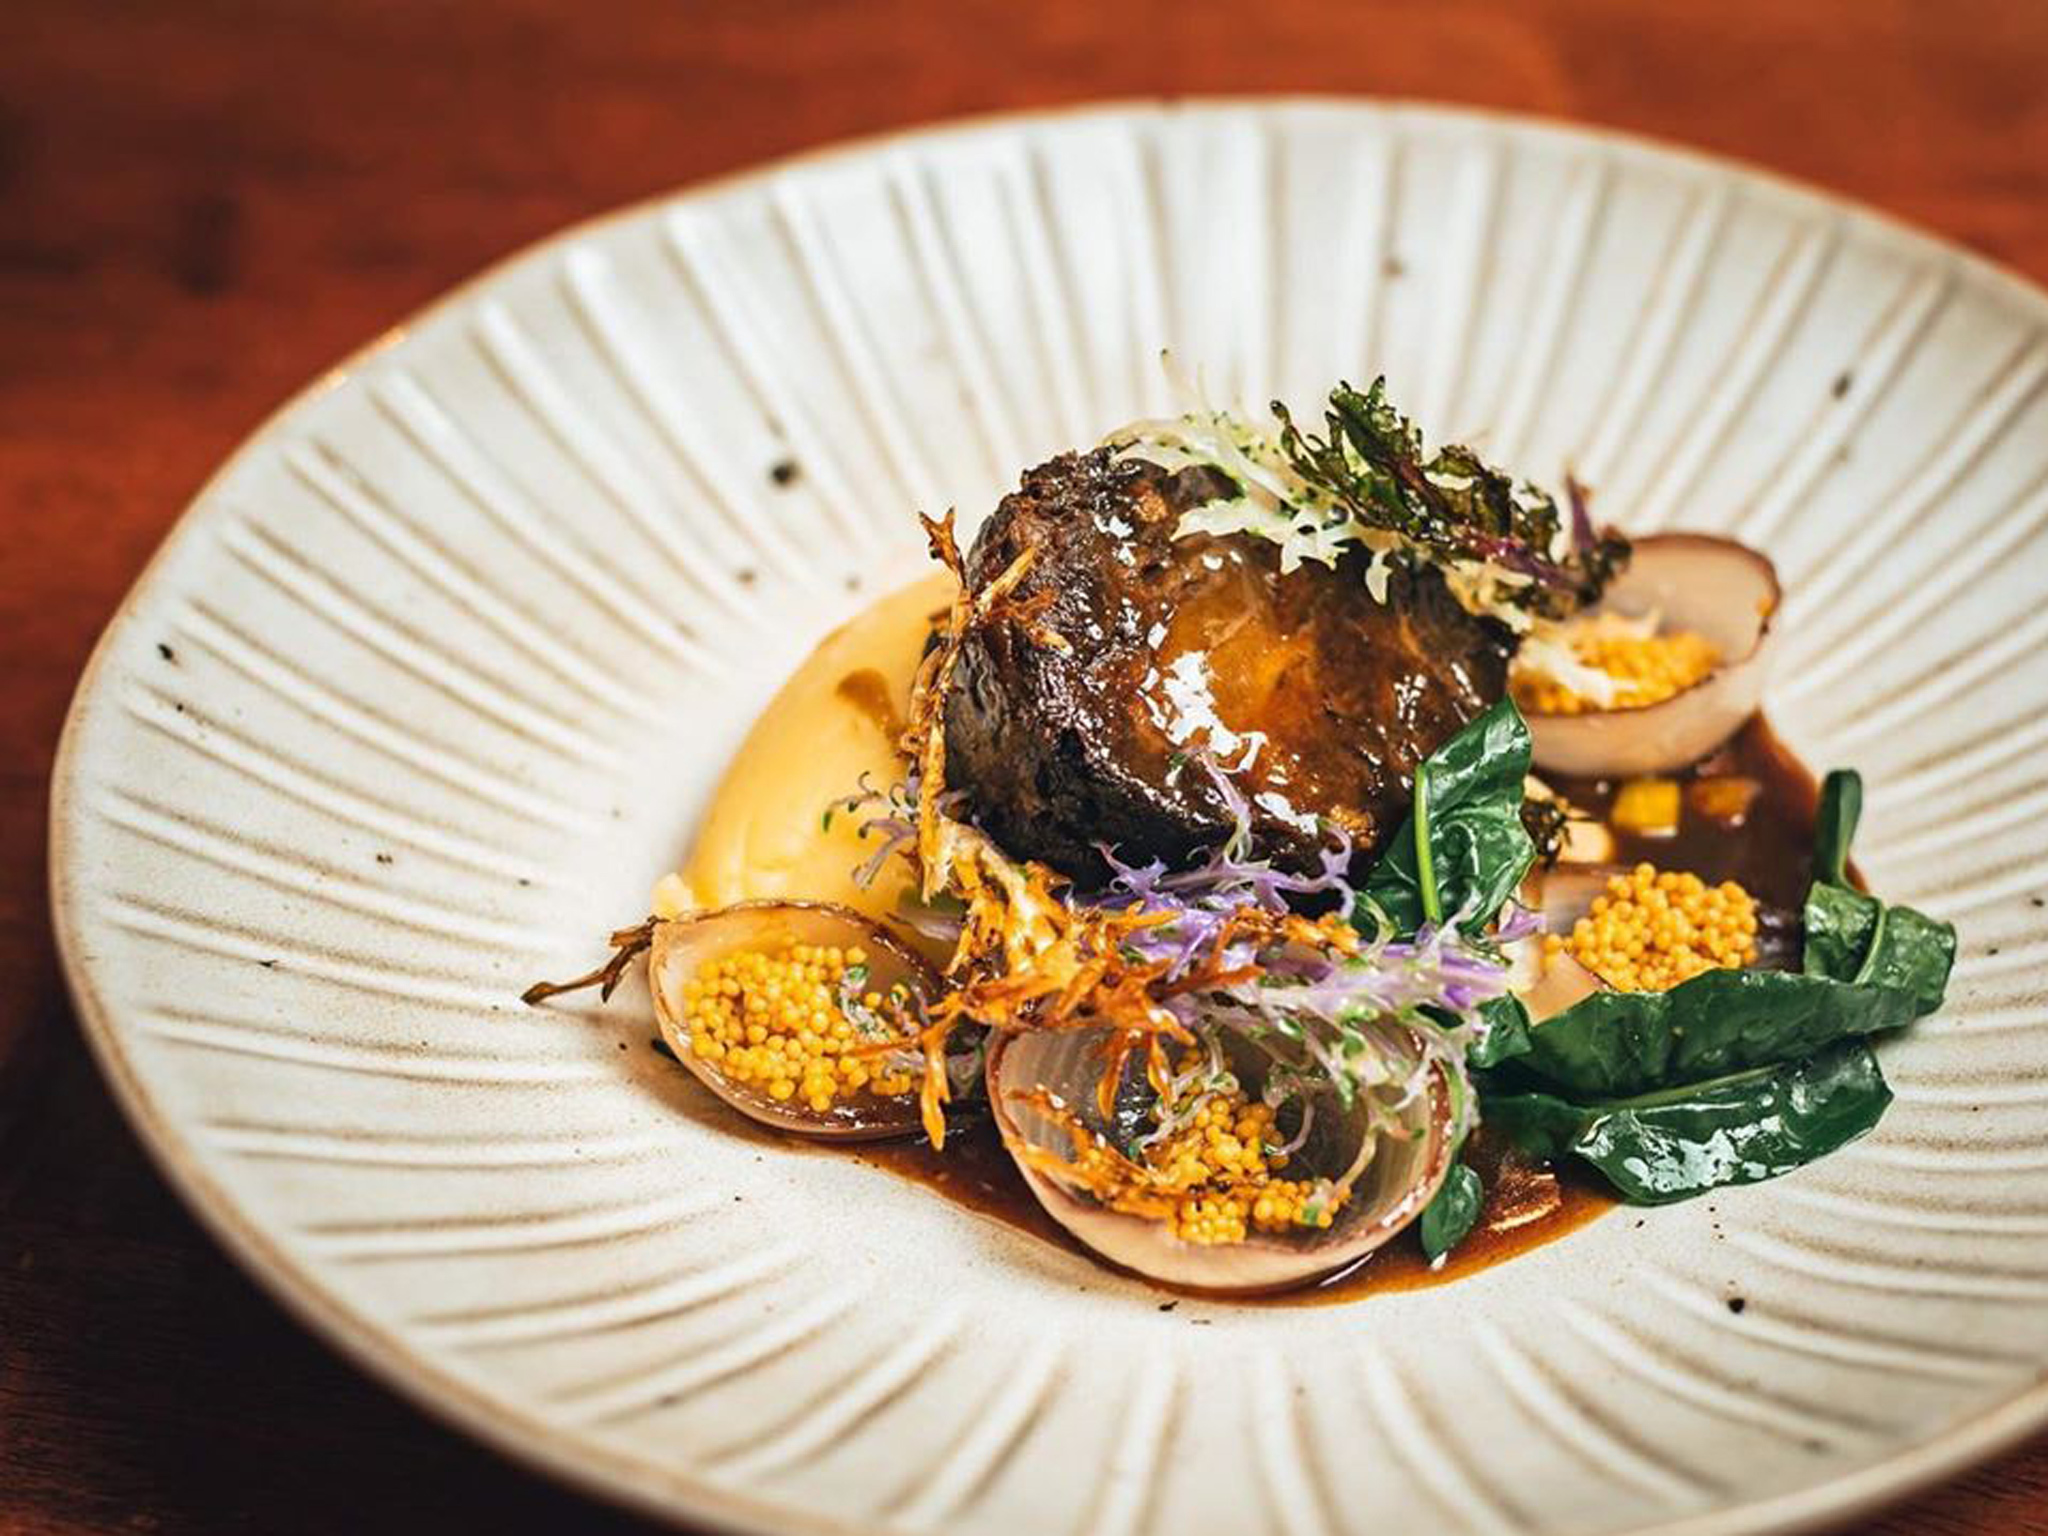 The 15 best restaurants in York